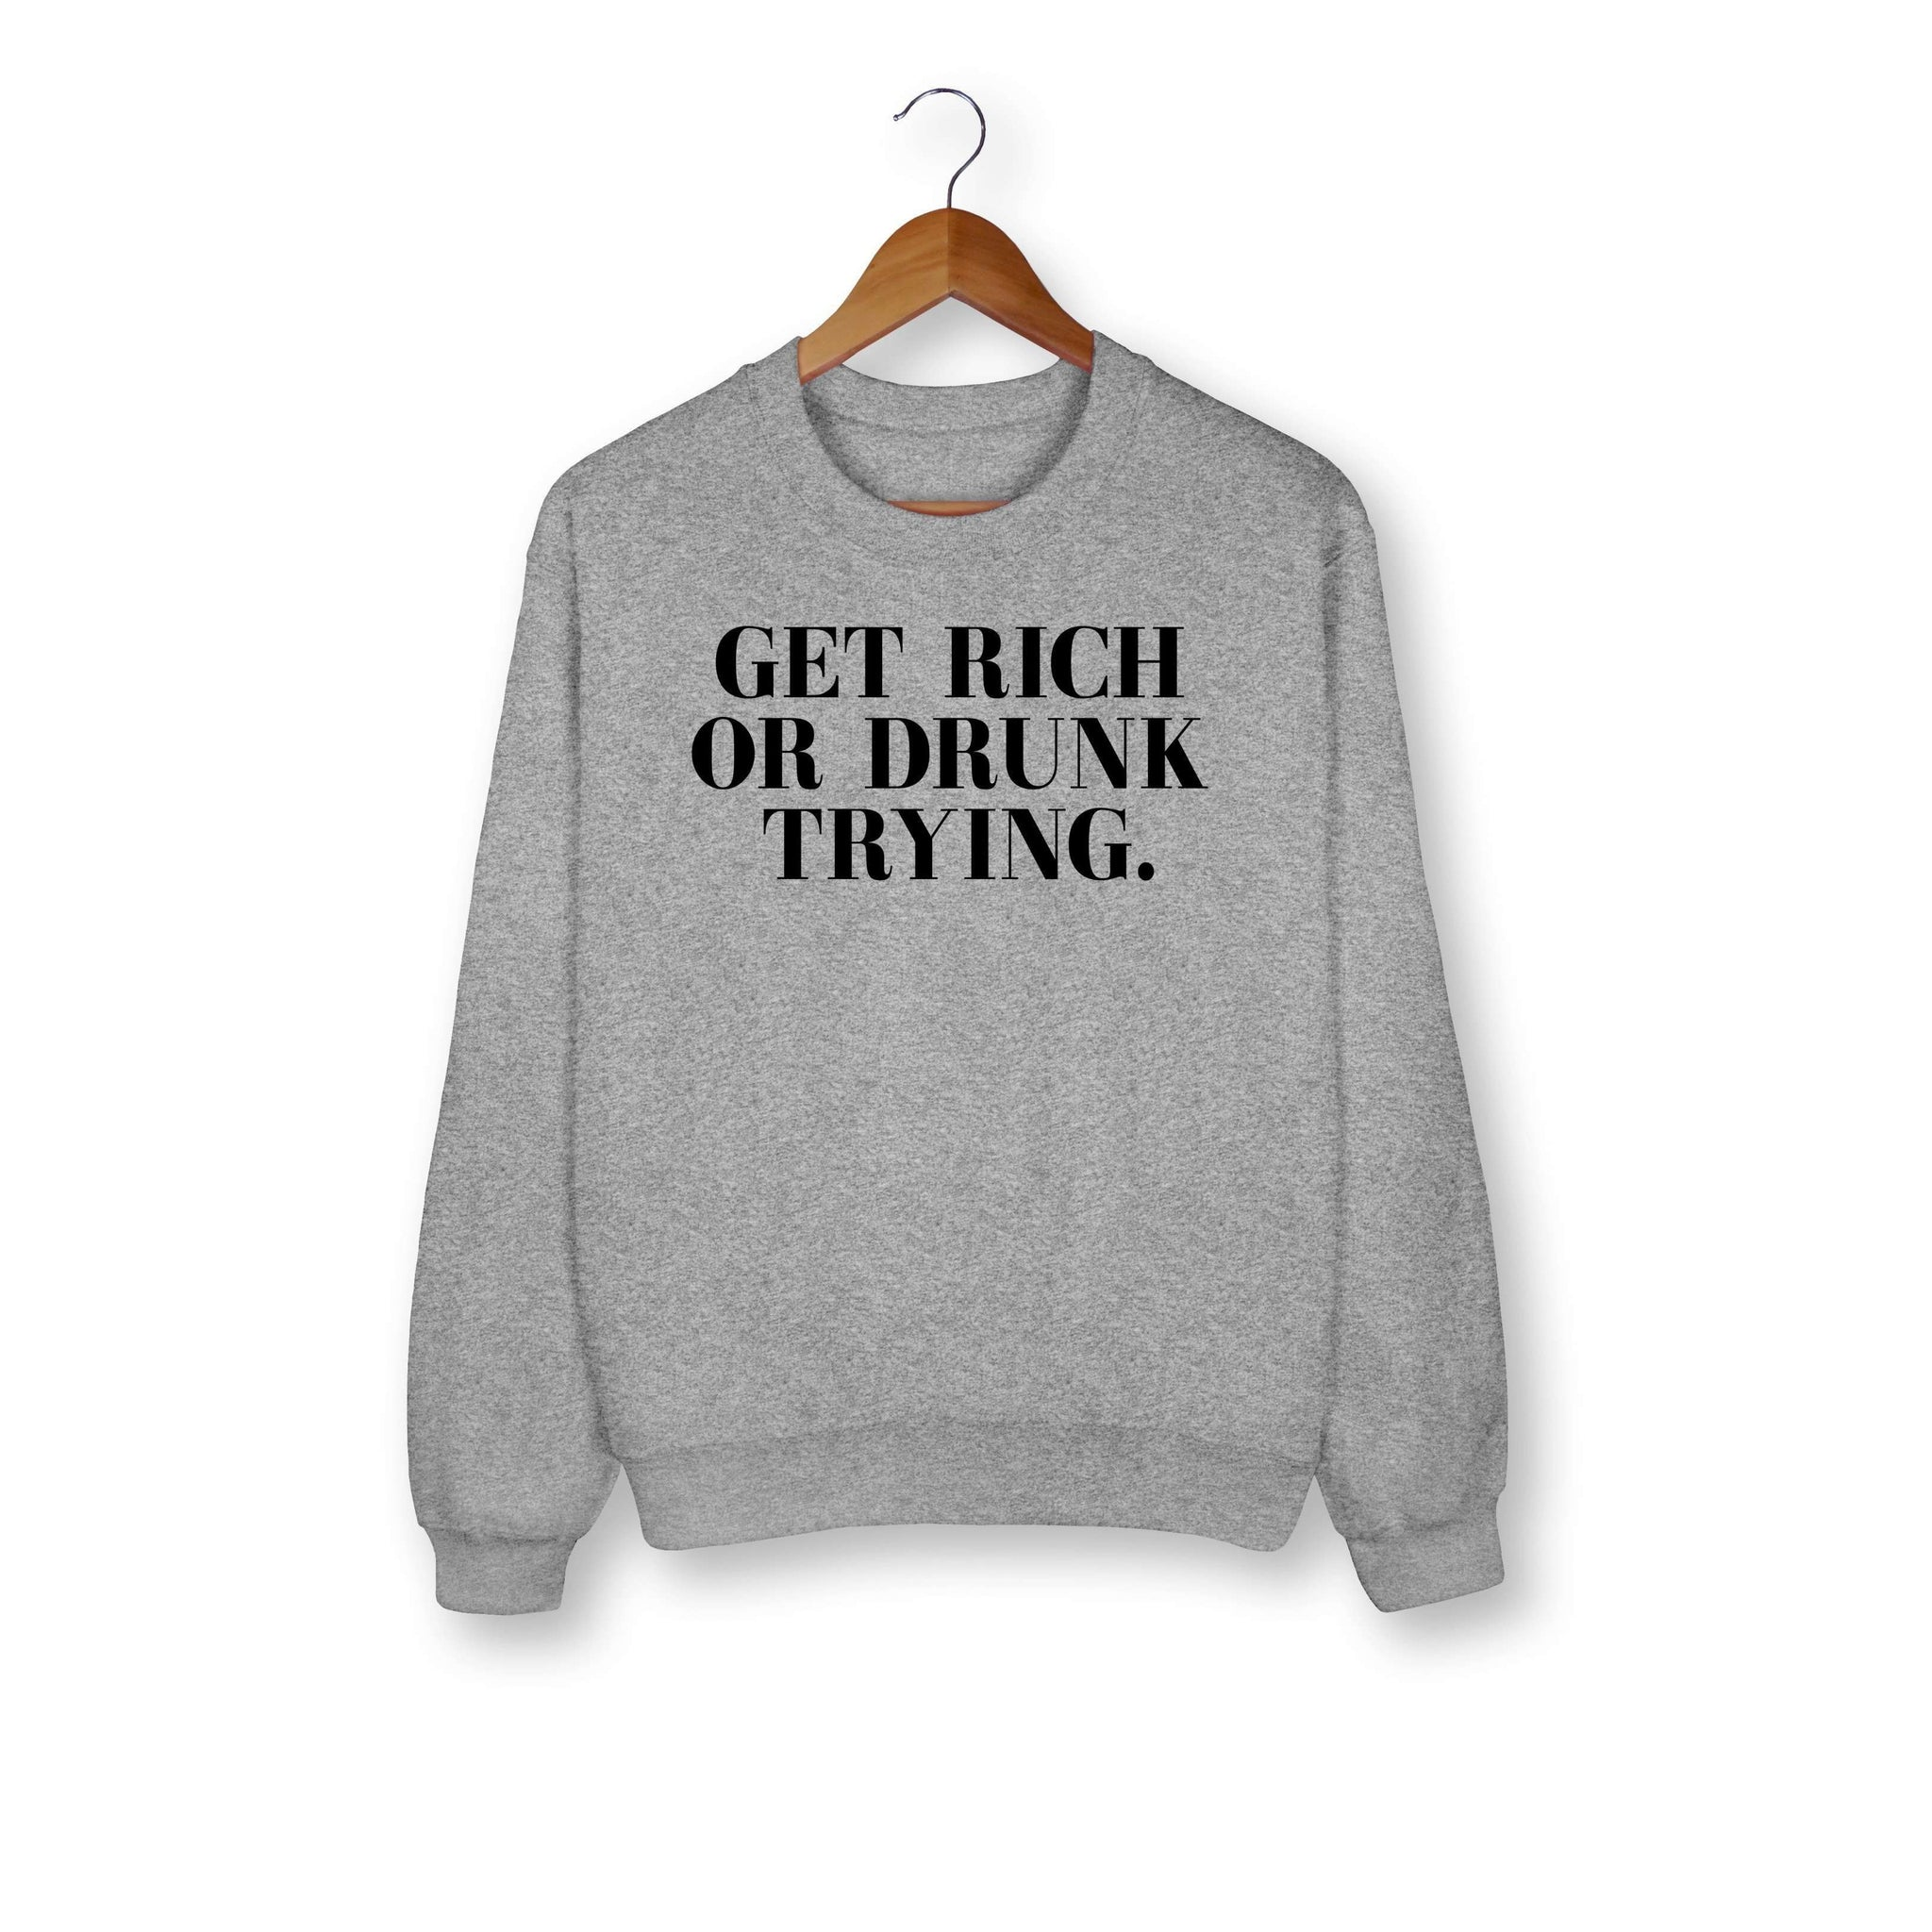 Get Rich Or Drunk Trying Sweatshirt